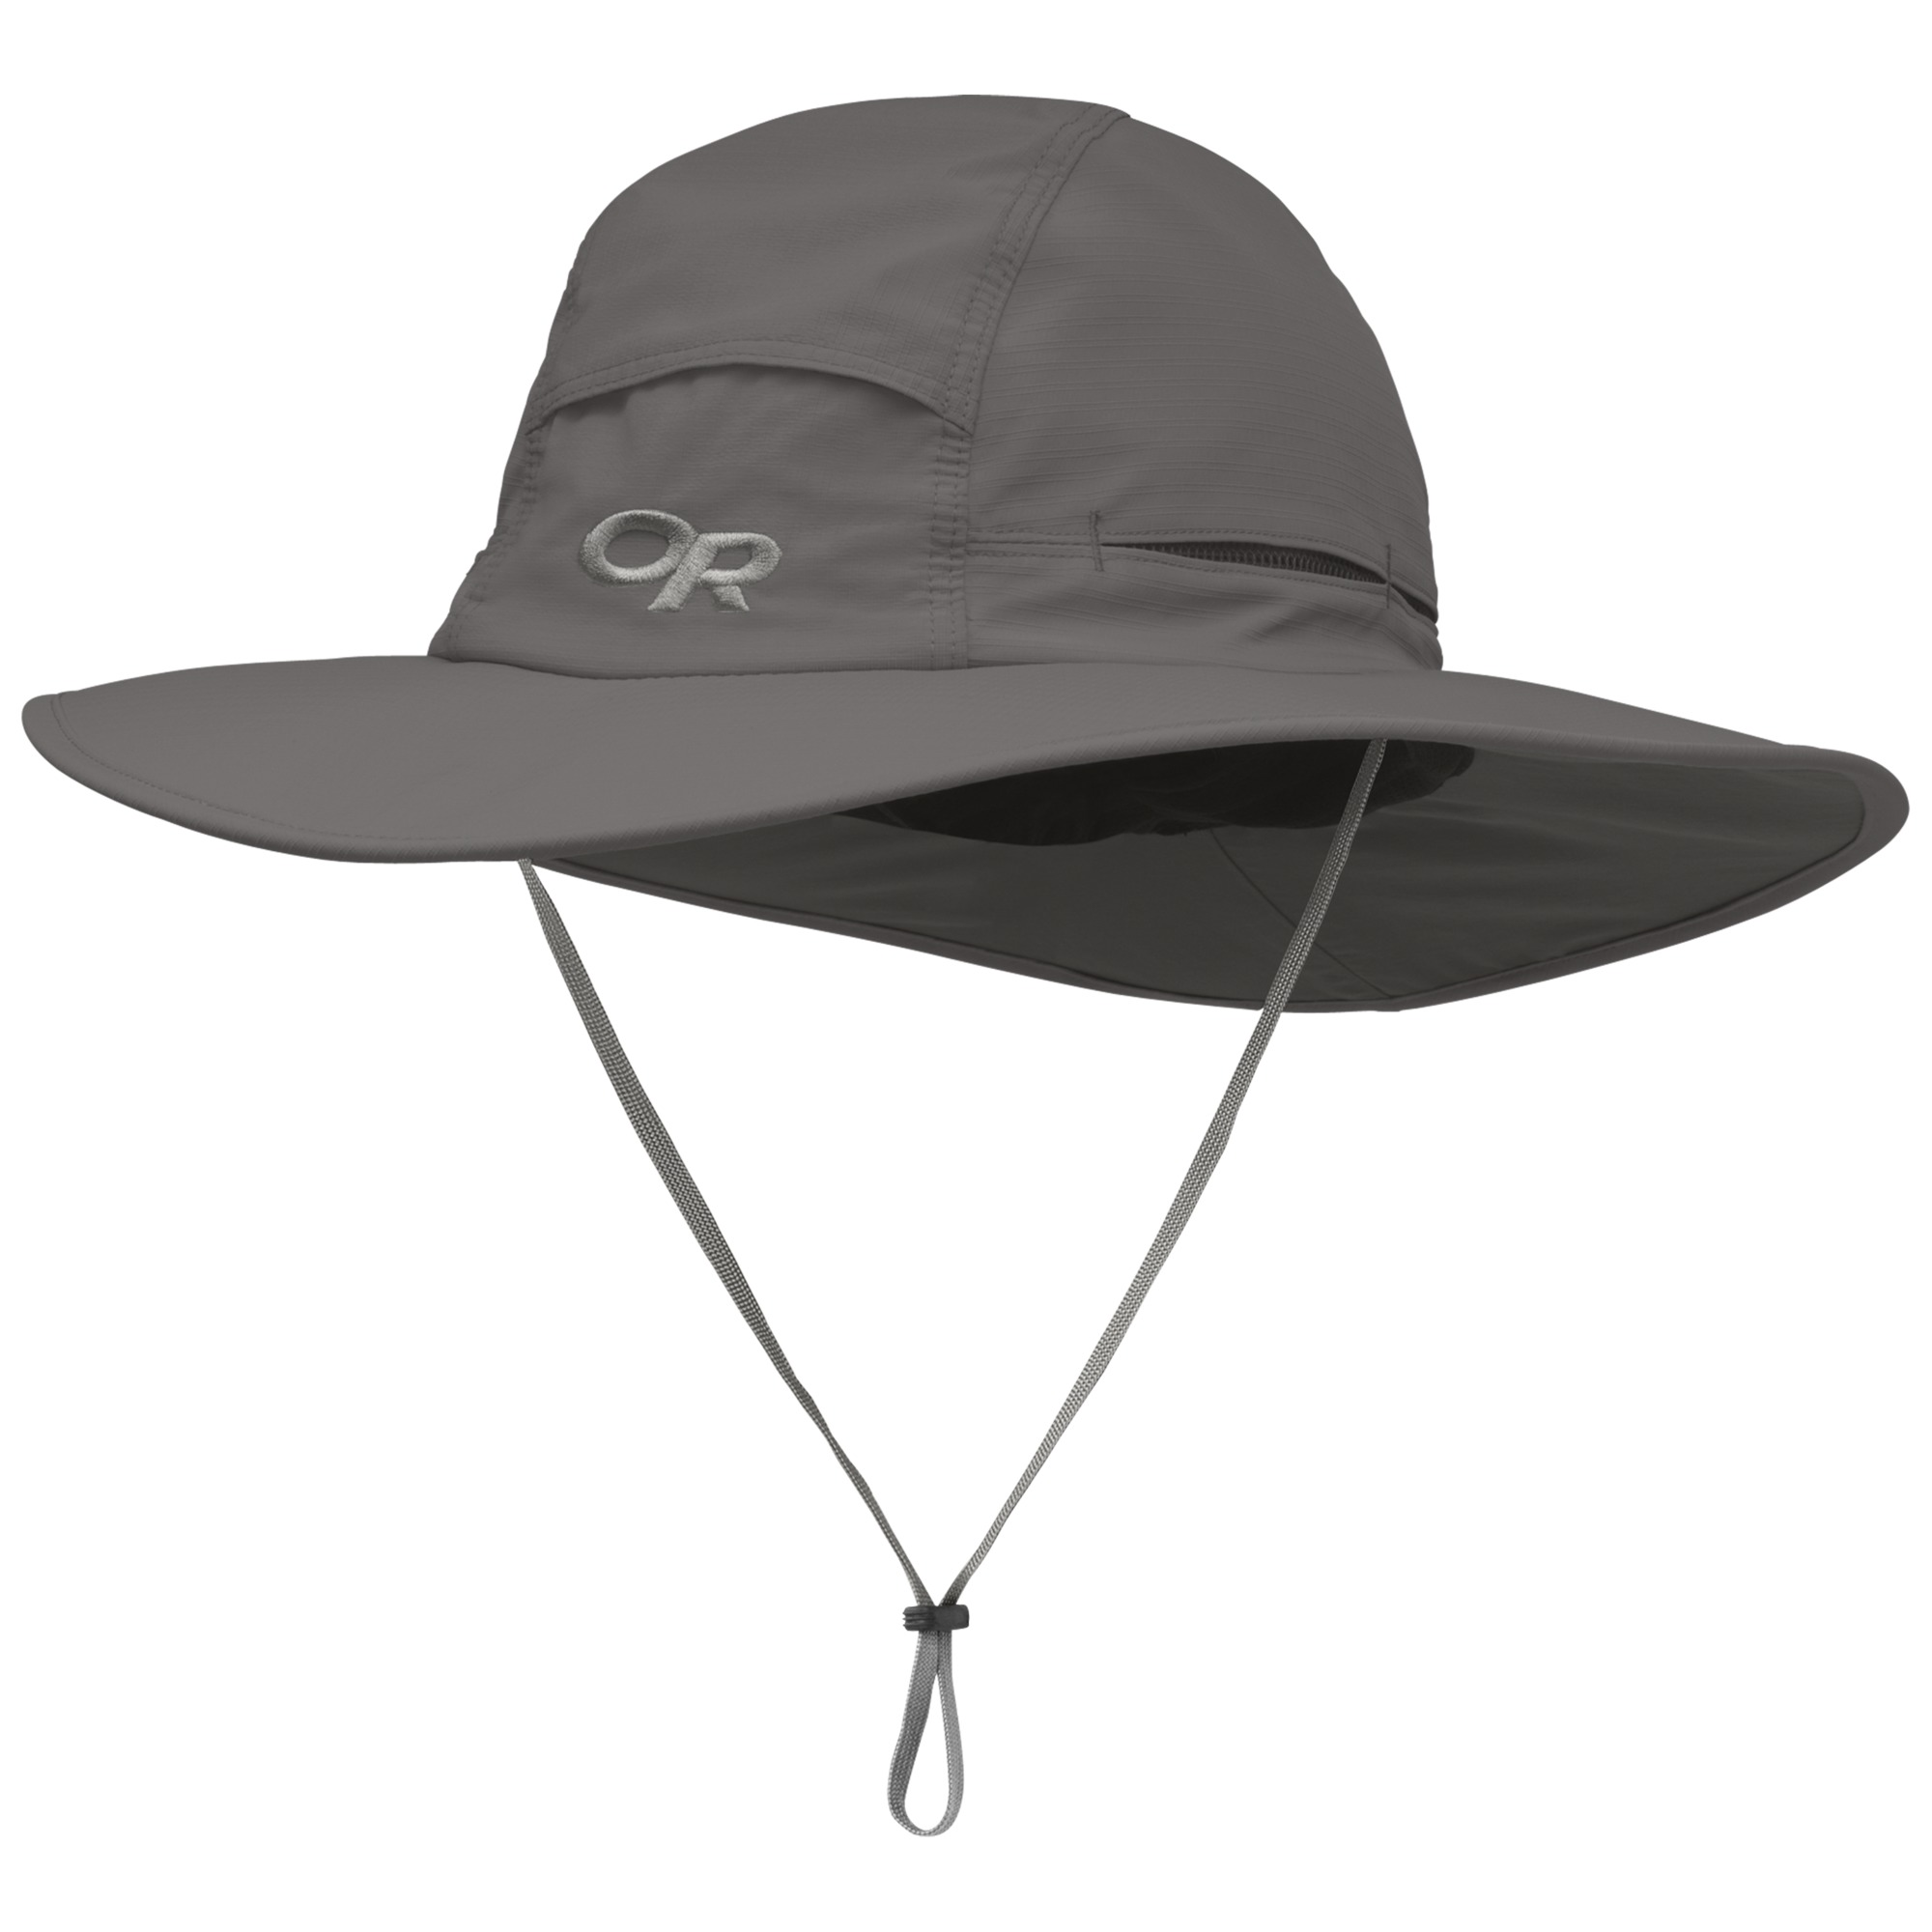 9207b482492 Sombriolet Sun Hat - pewter